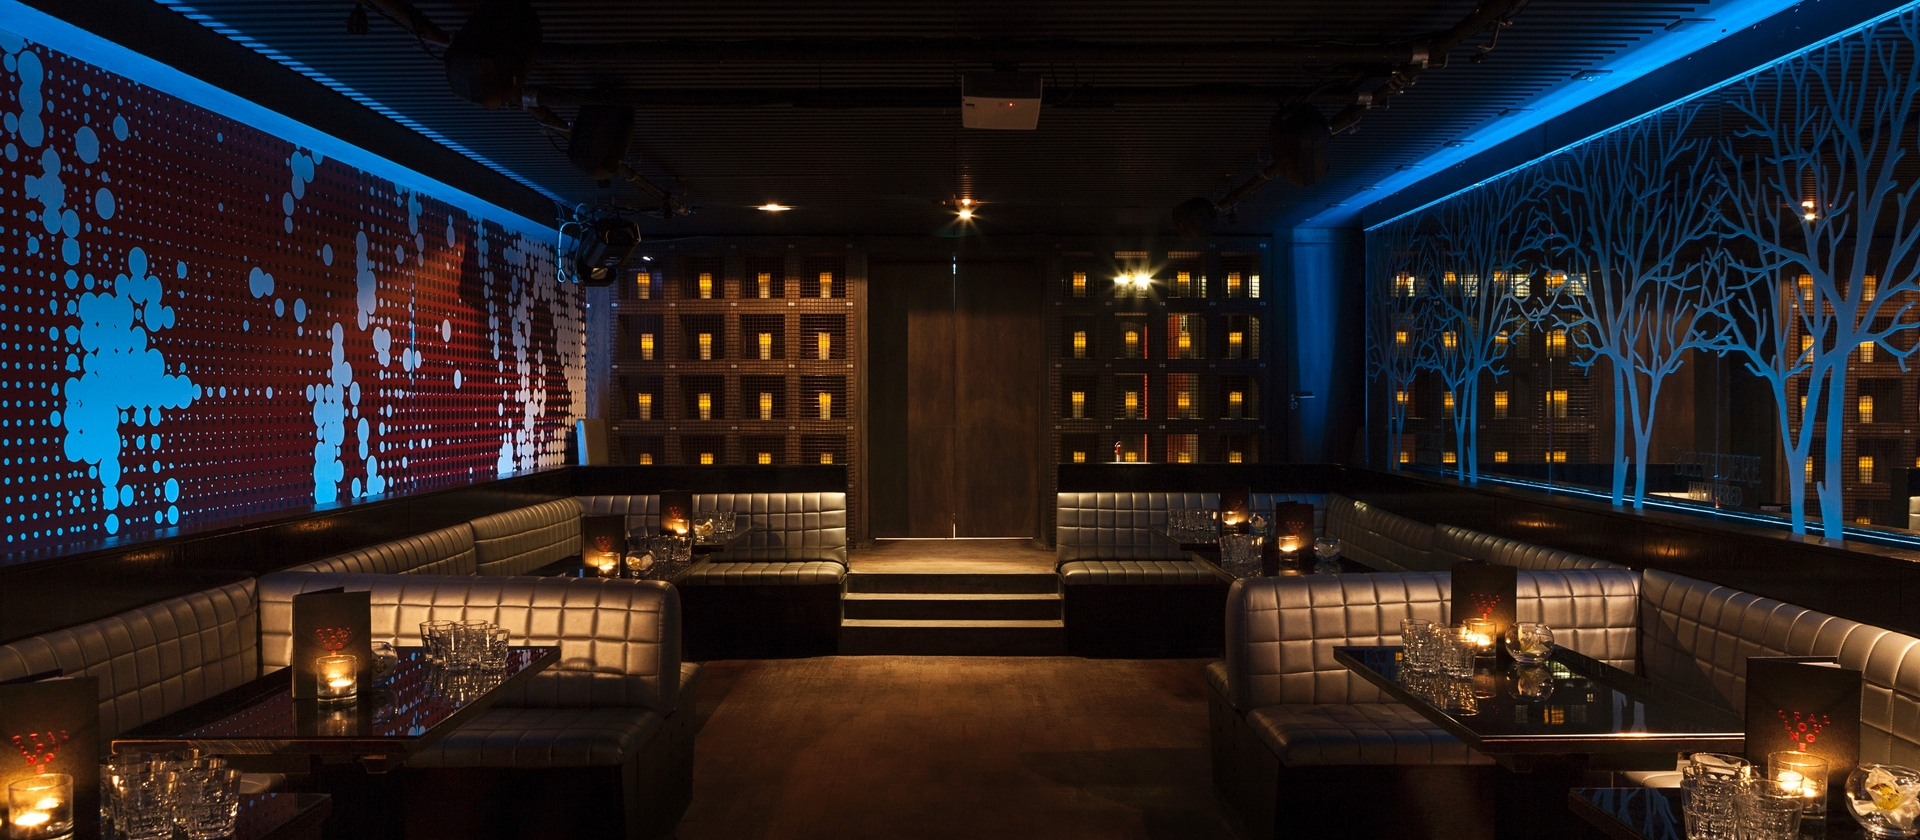 DRINKS: OPAL LOUNGE